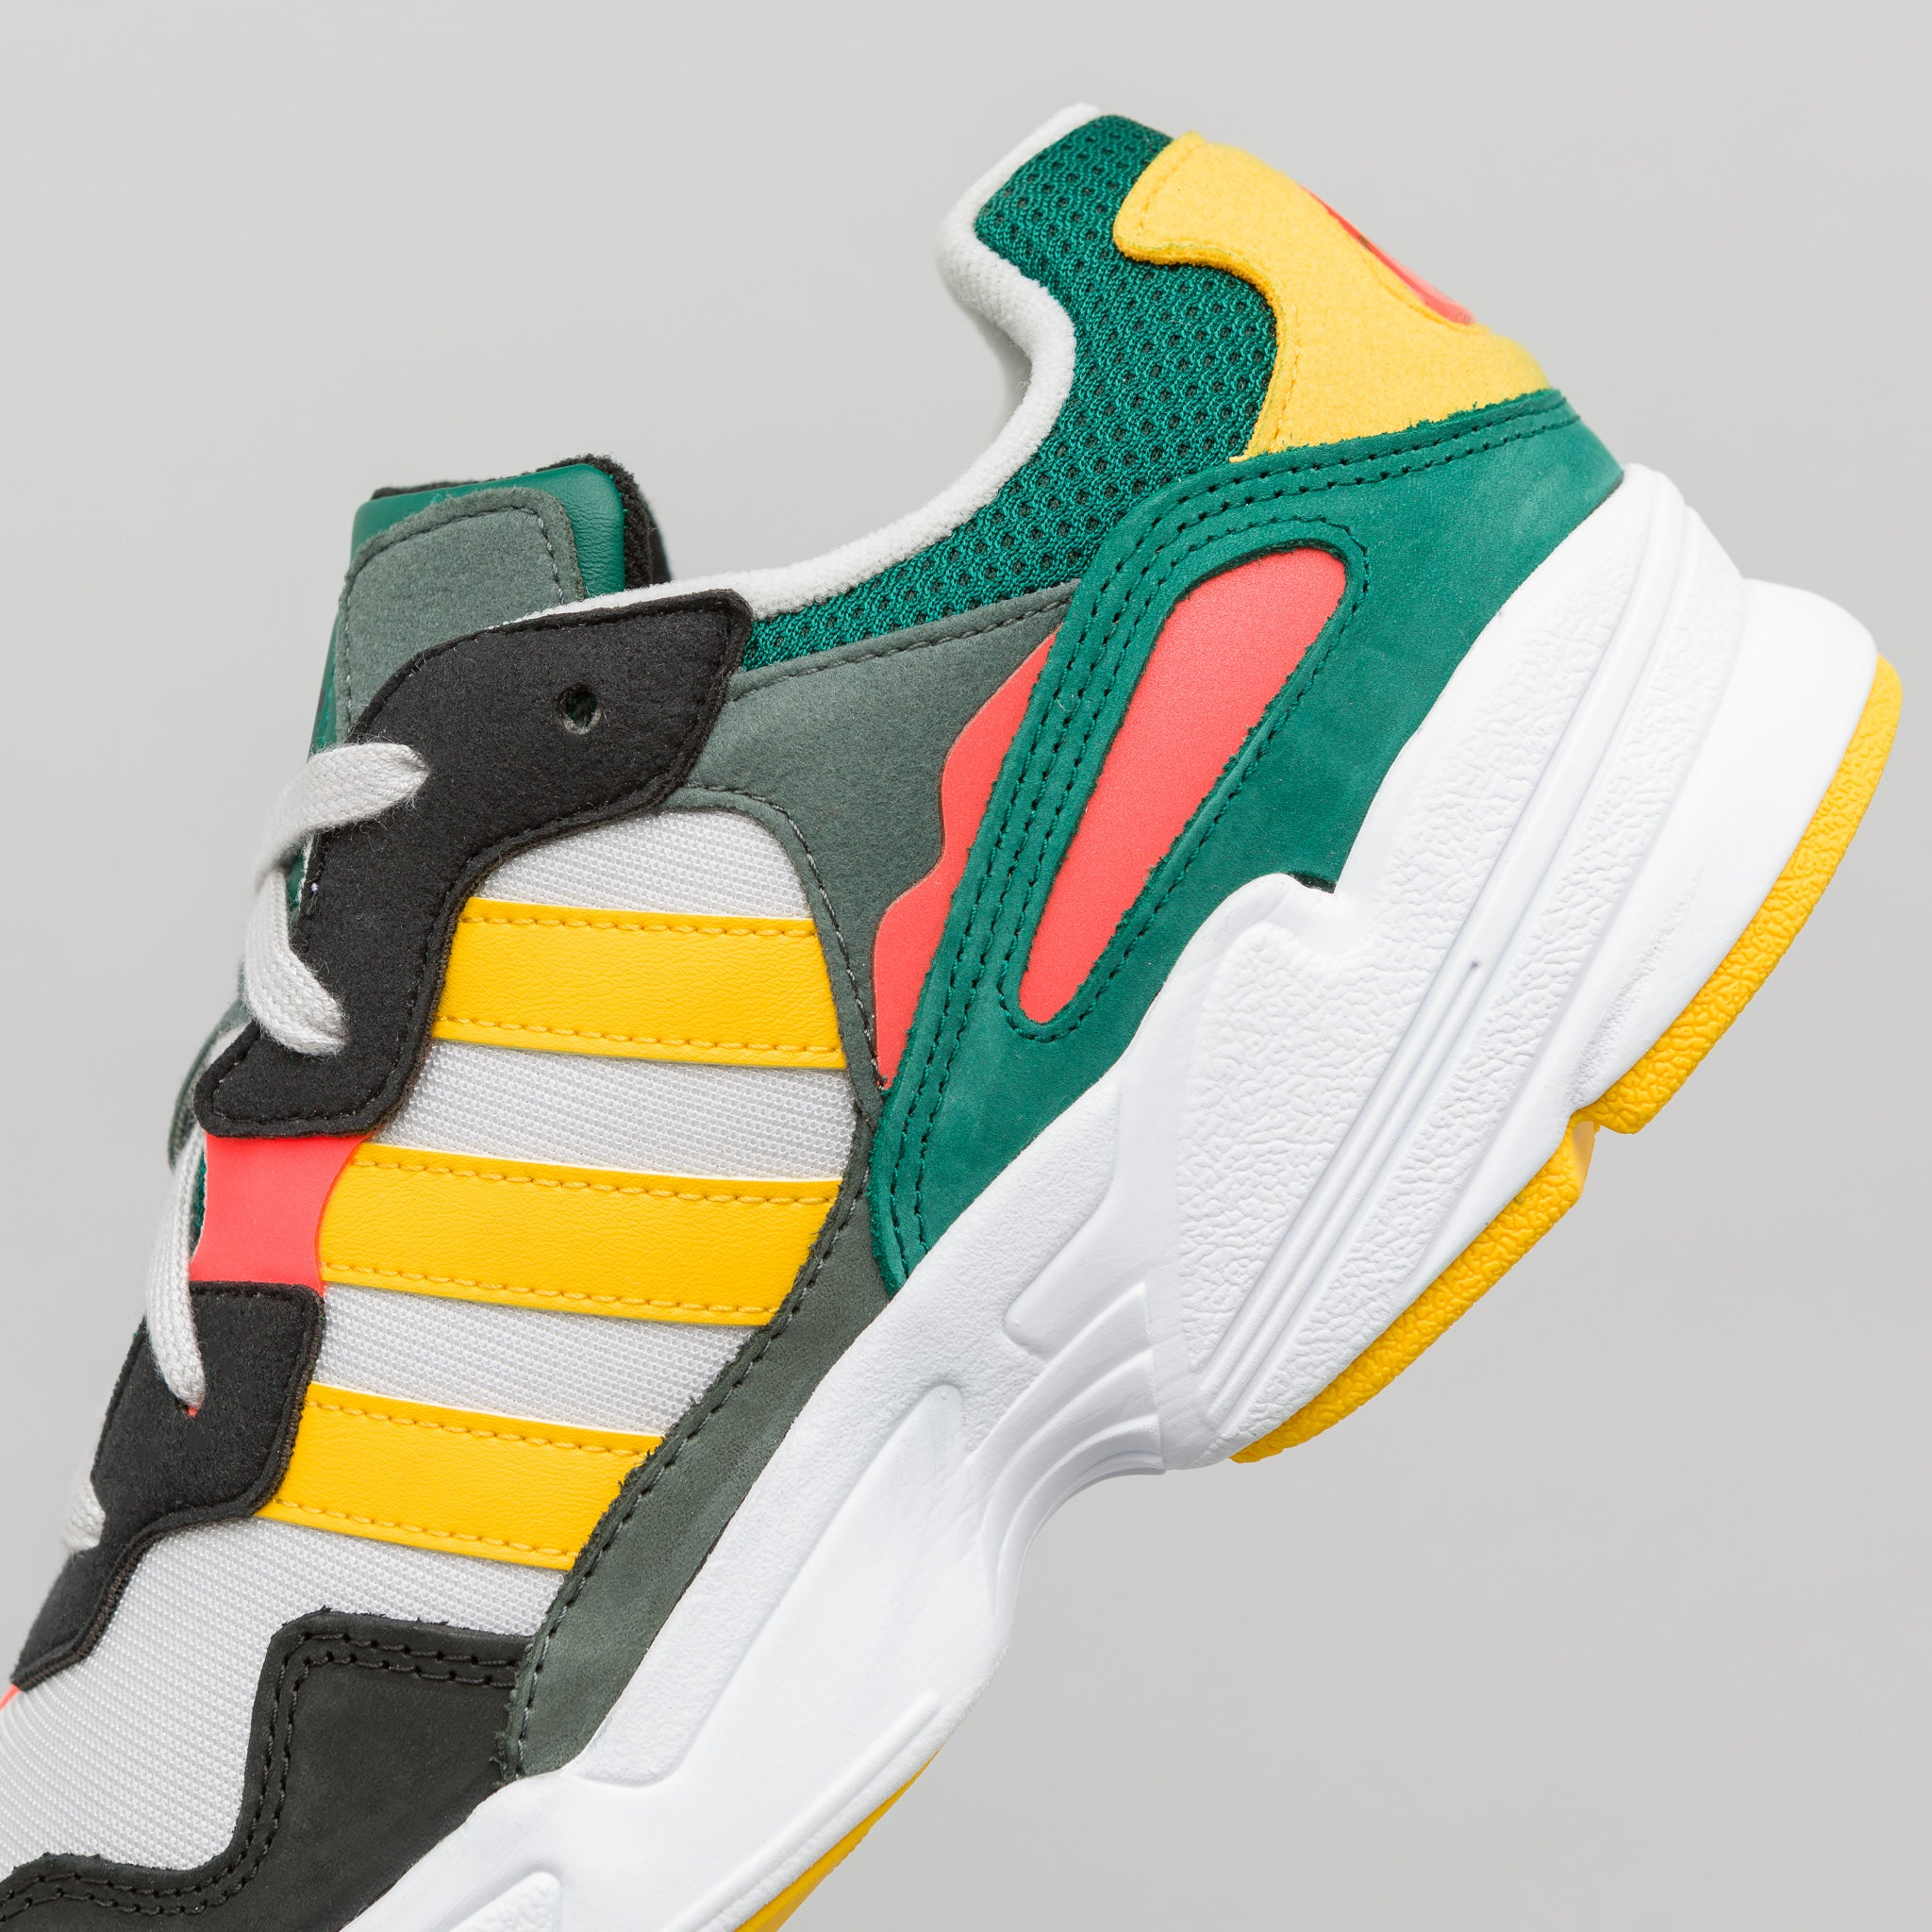 adidas Yung-96 in Grey Gold Red  6a1fc85a8